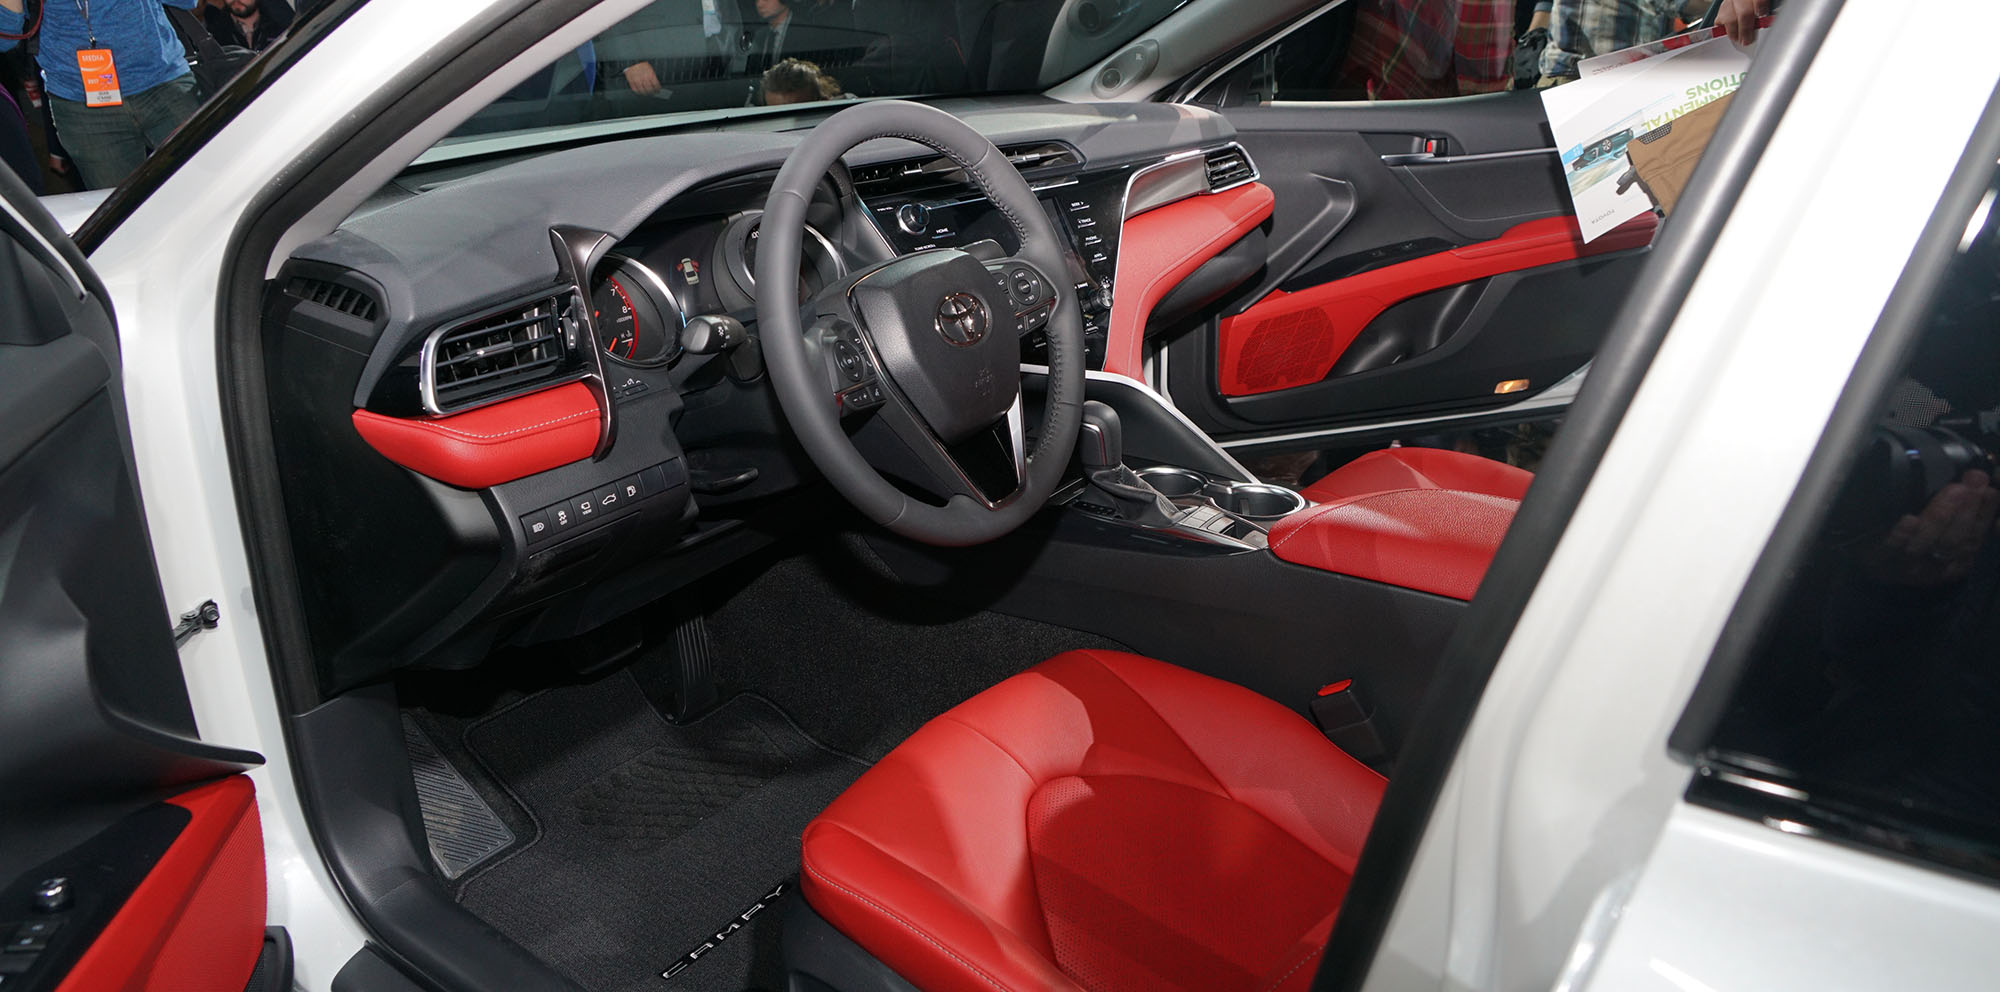 2018 toyota camry interior. modren toyota 2018 toyota camry revealed japanbuilt sedan in australia from late 2017 in toyota camry interior